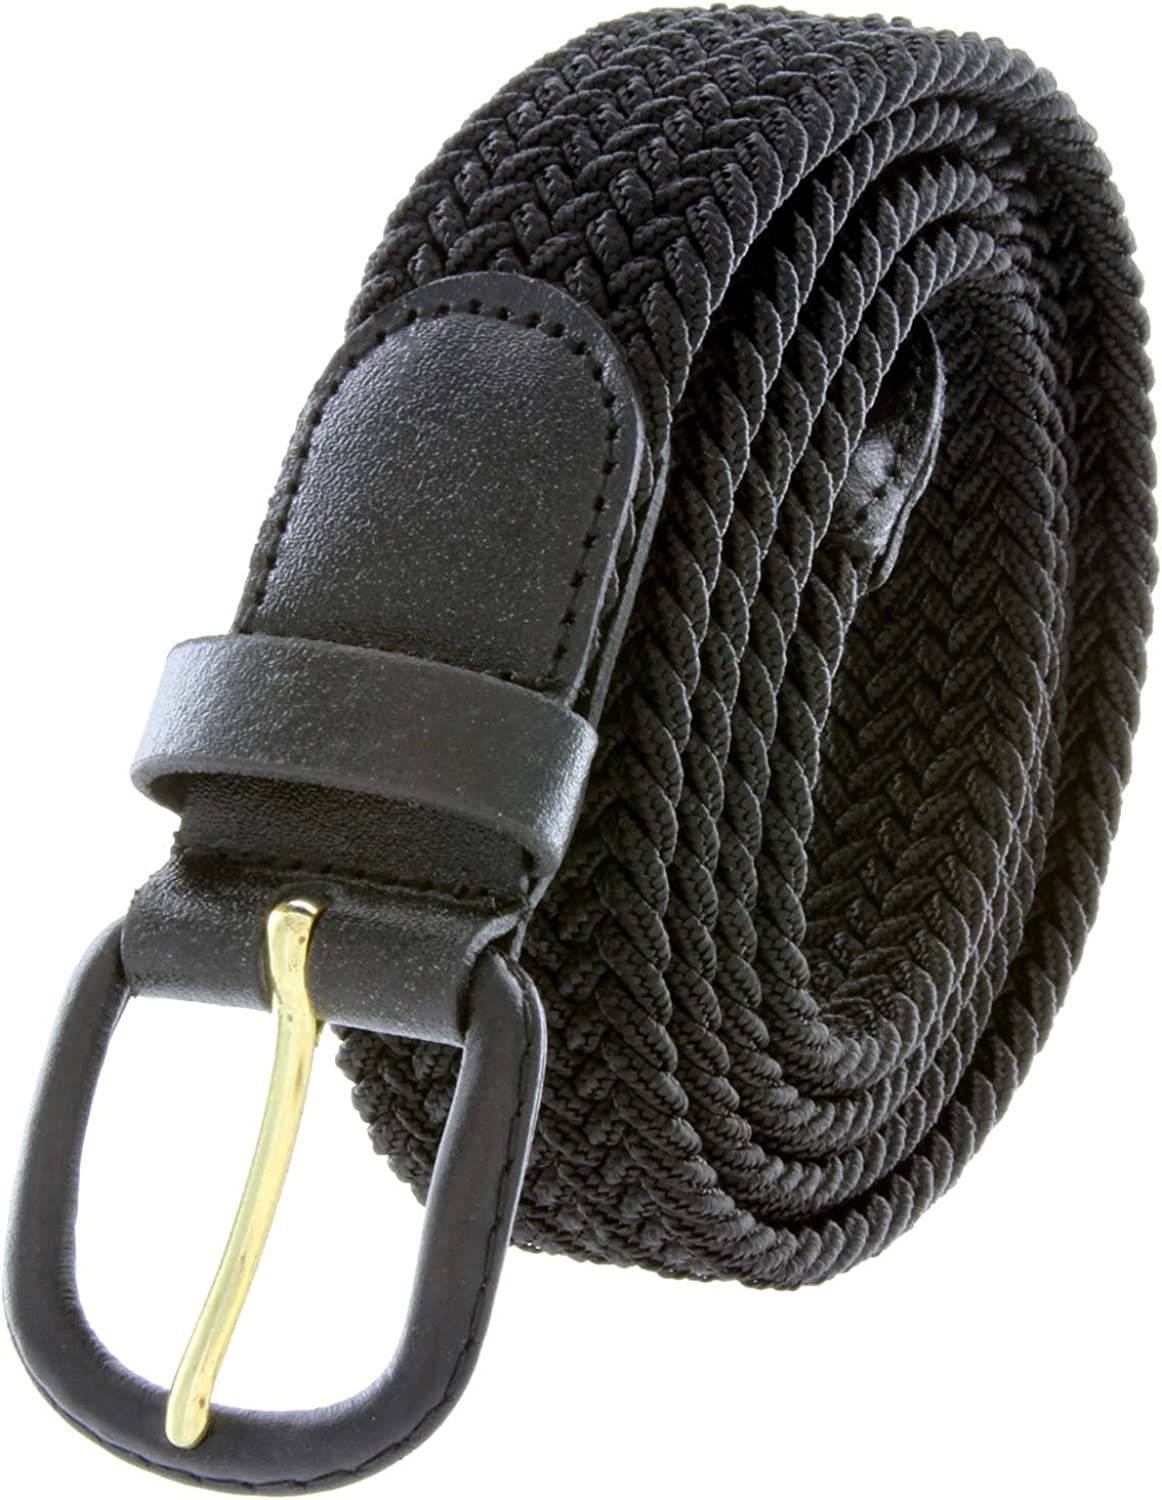 Leather Covered Buckle Woven Elastic Stretch Belt 1-1//4 Wide Grey